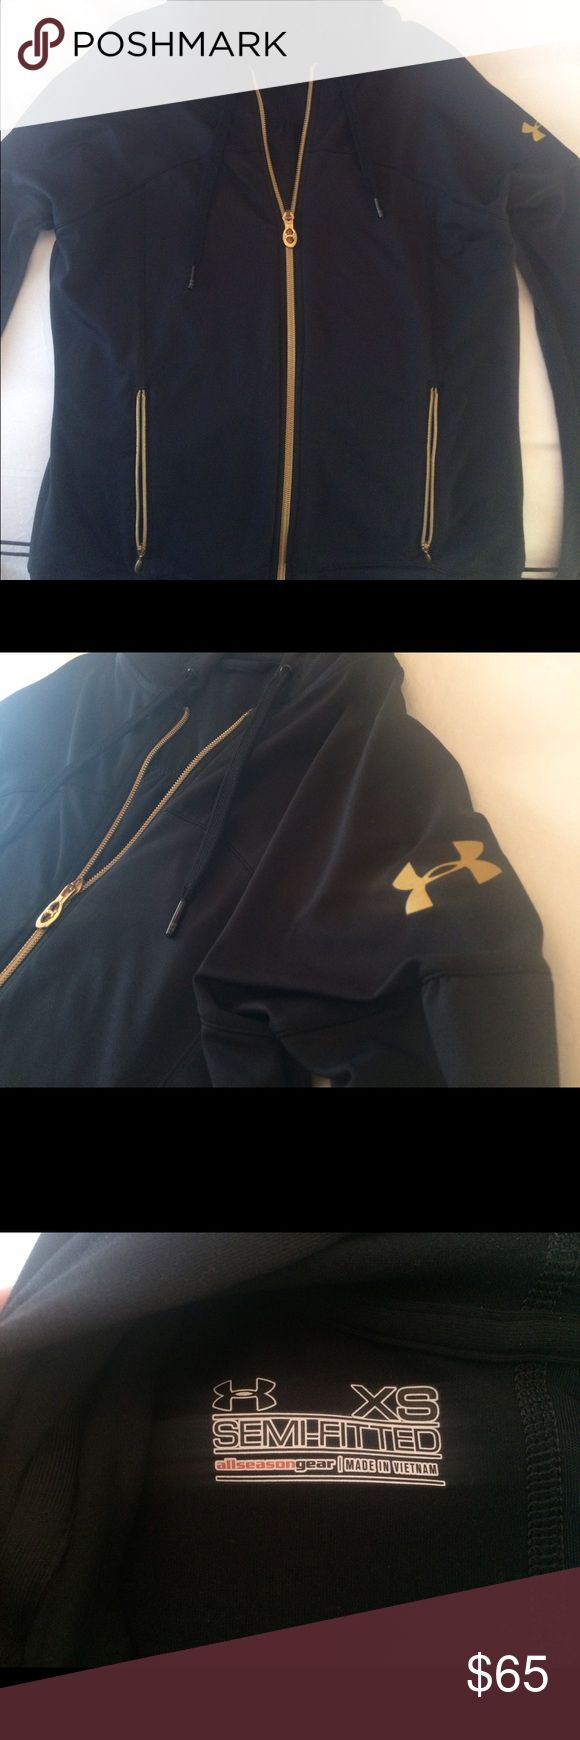 NWOT Under Armour Black and Gold Zip Up Hoodie Excellent condition (worn once!) black zip up Under Armour hoodie with gold hardware. It is semi-fitted for a flattering look! Can fit an XS-M depending on how fitted you like it Under Armour Jackets & Coats